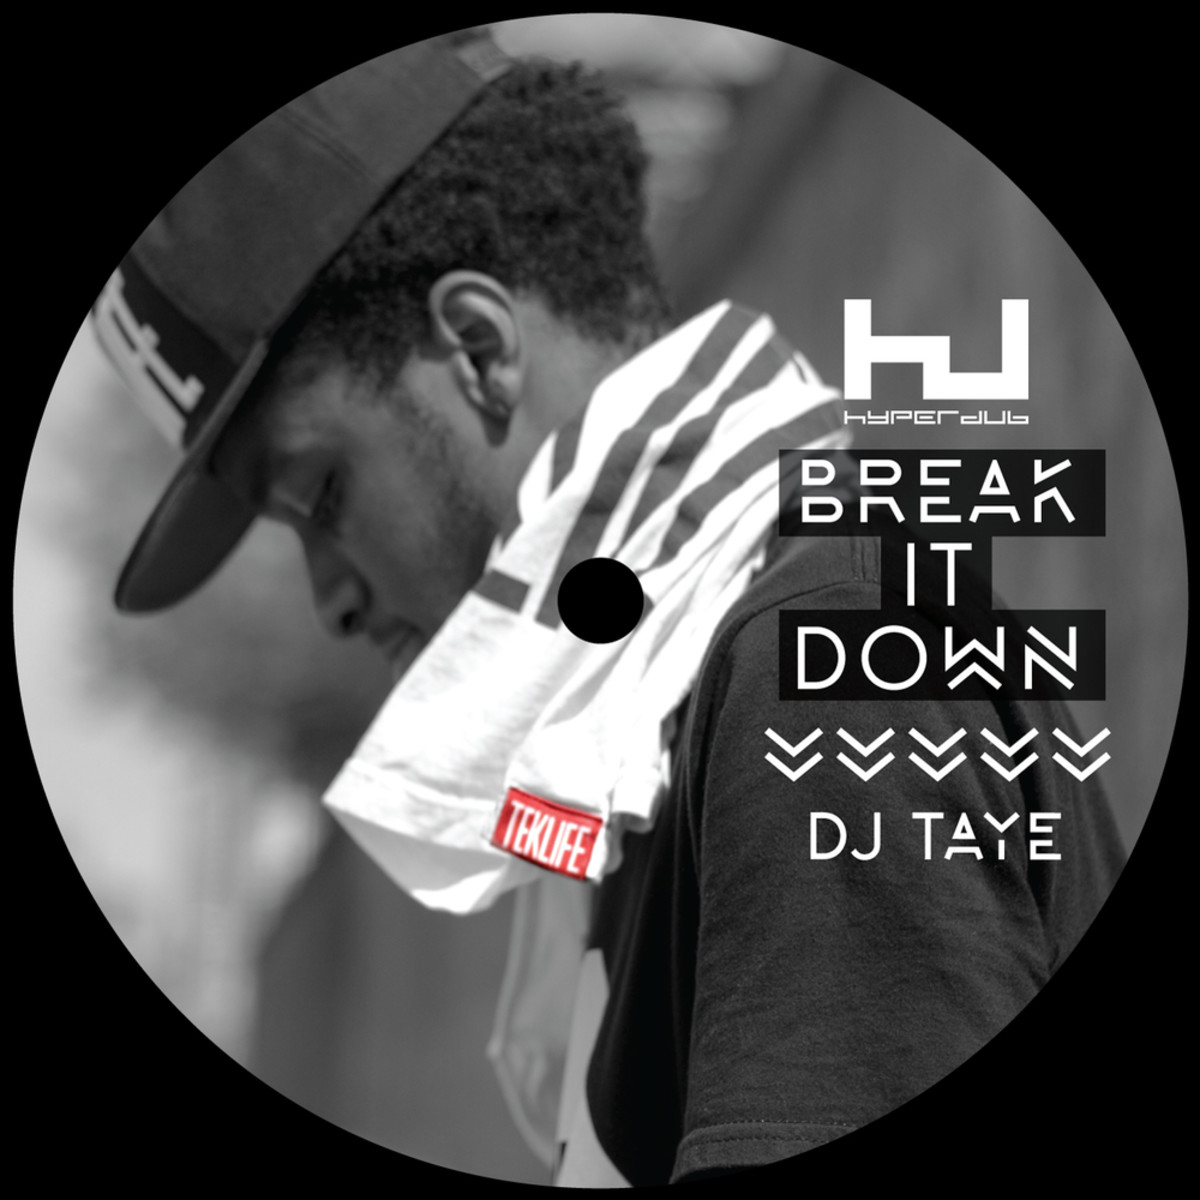 DJ Taye Break It Down EP